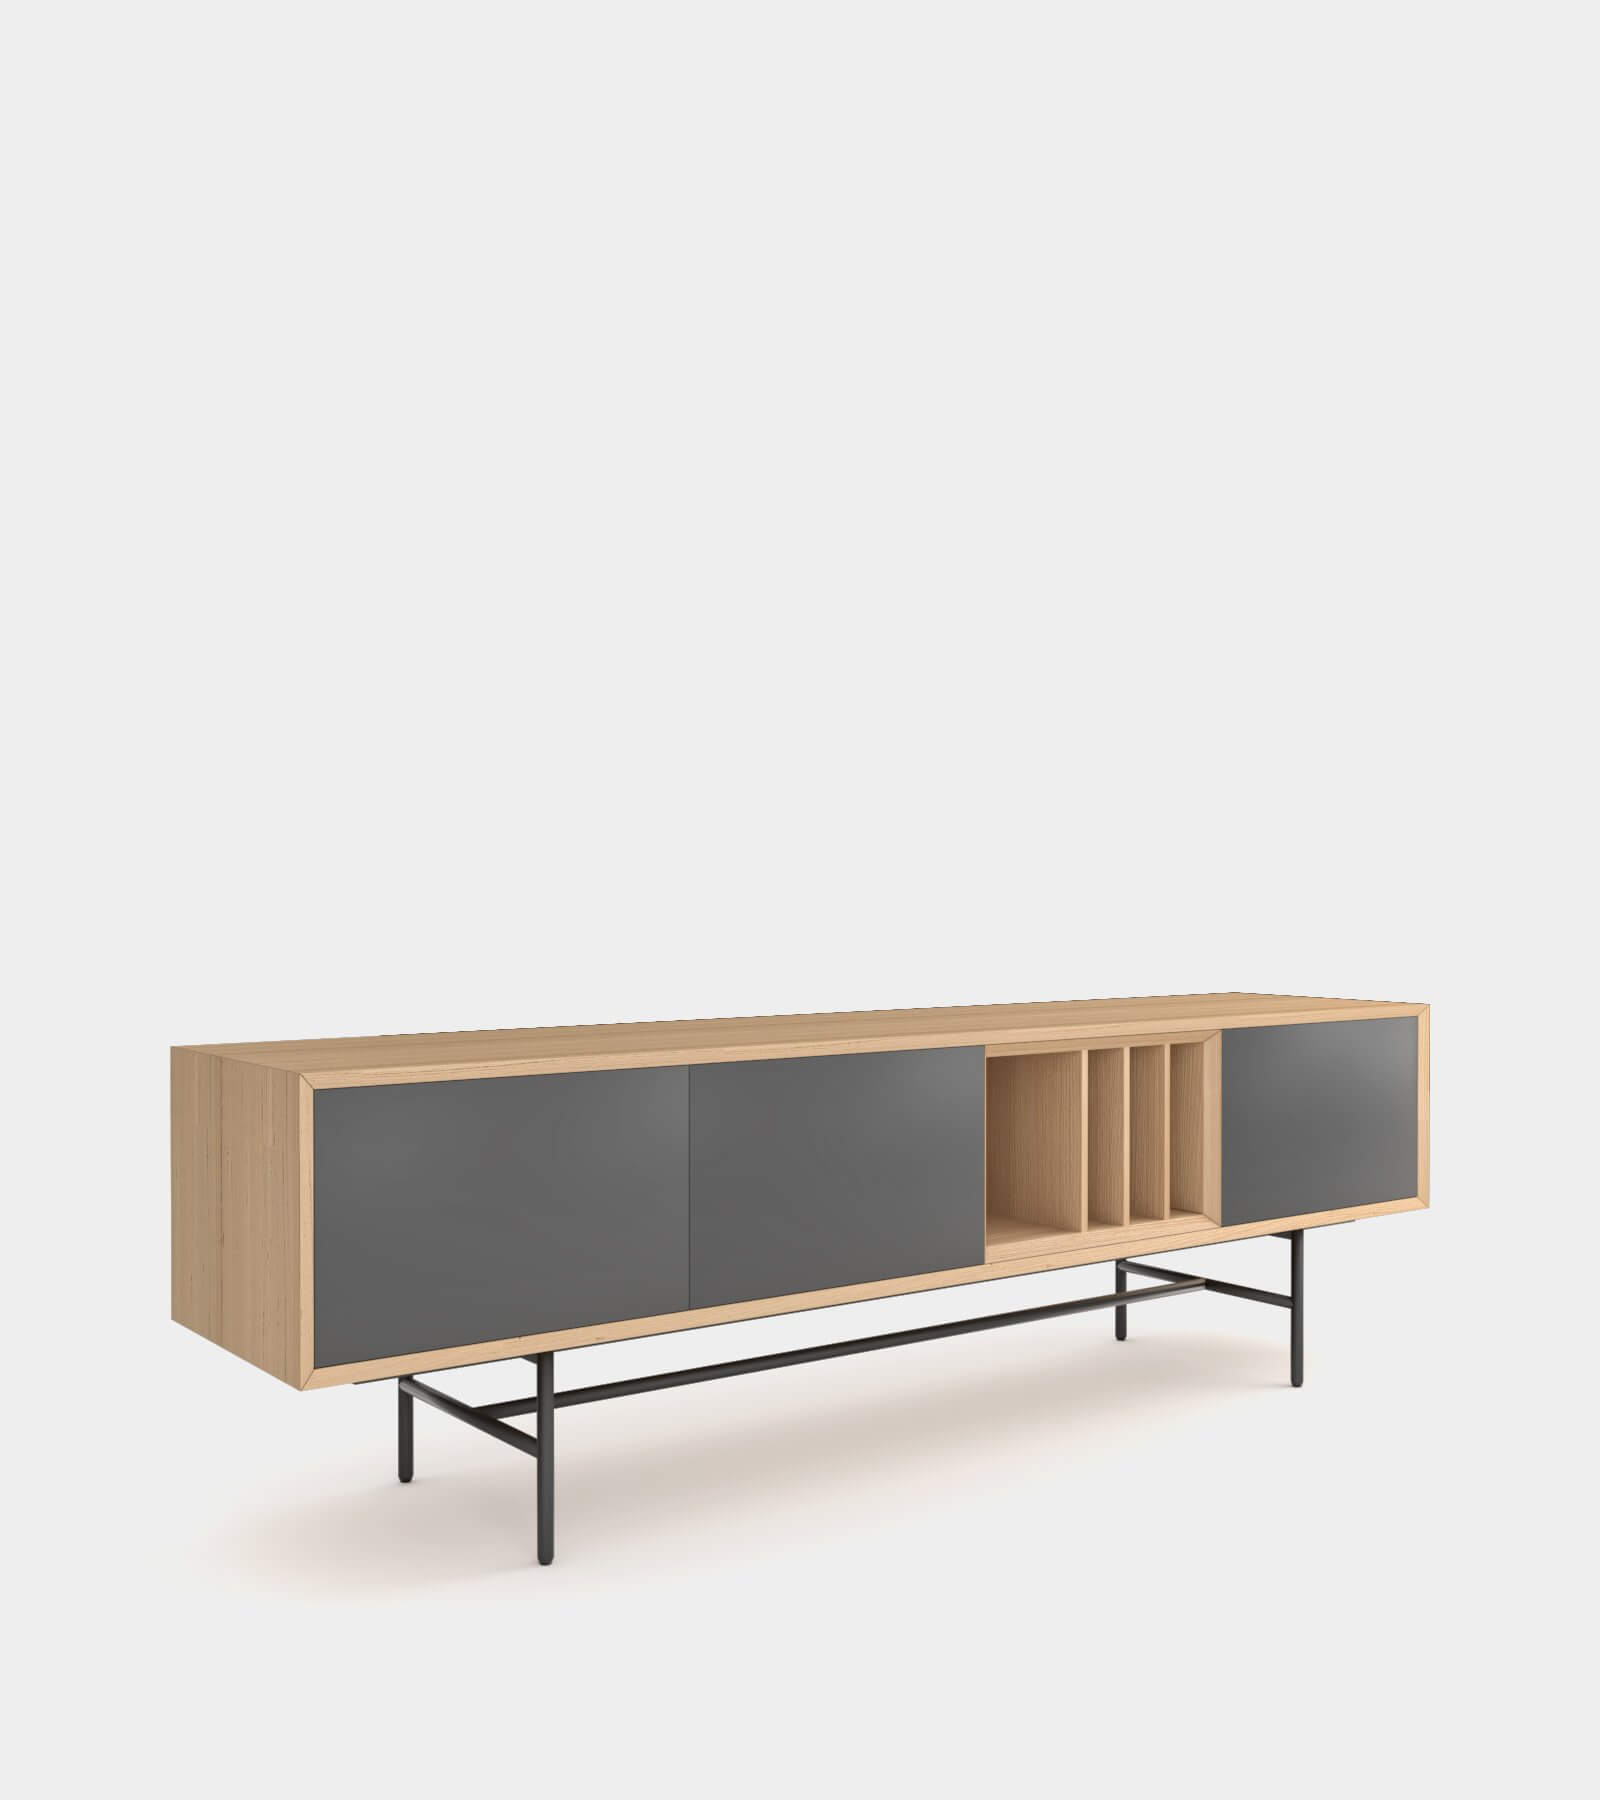 Clean and modern sideboard with wood frame-1 3D Model